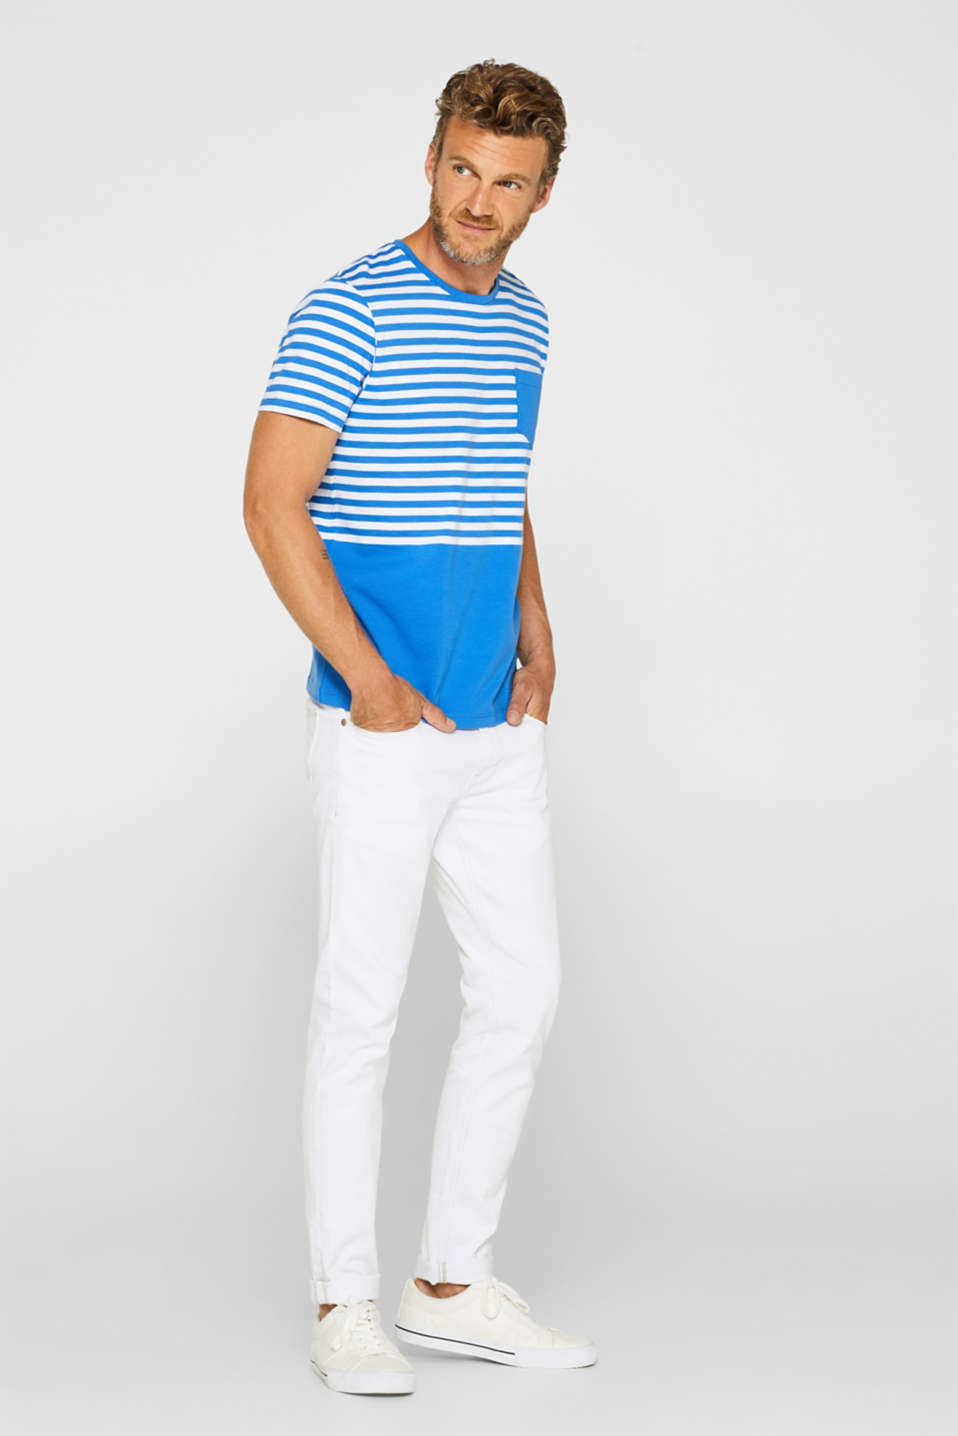 Jersey T-shirt with stripes, 100% cotton, BLUE, detail image number 2